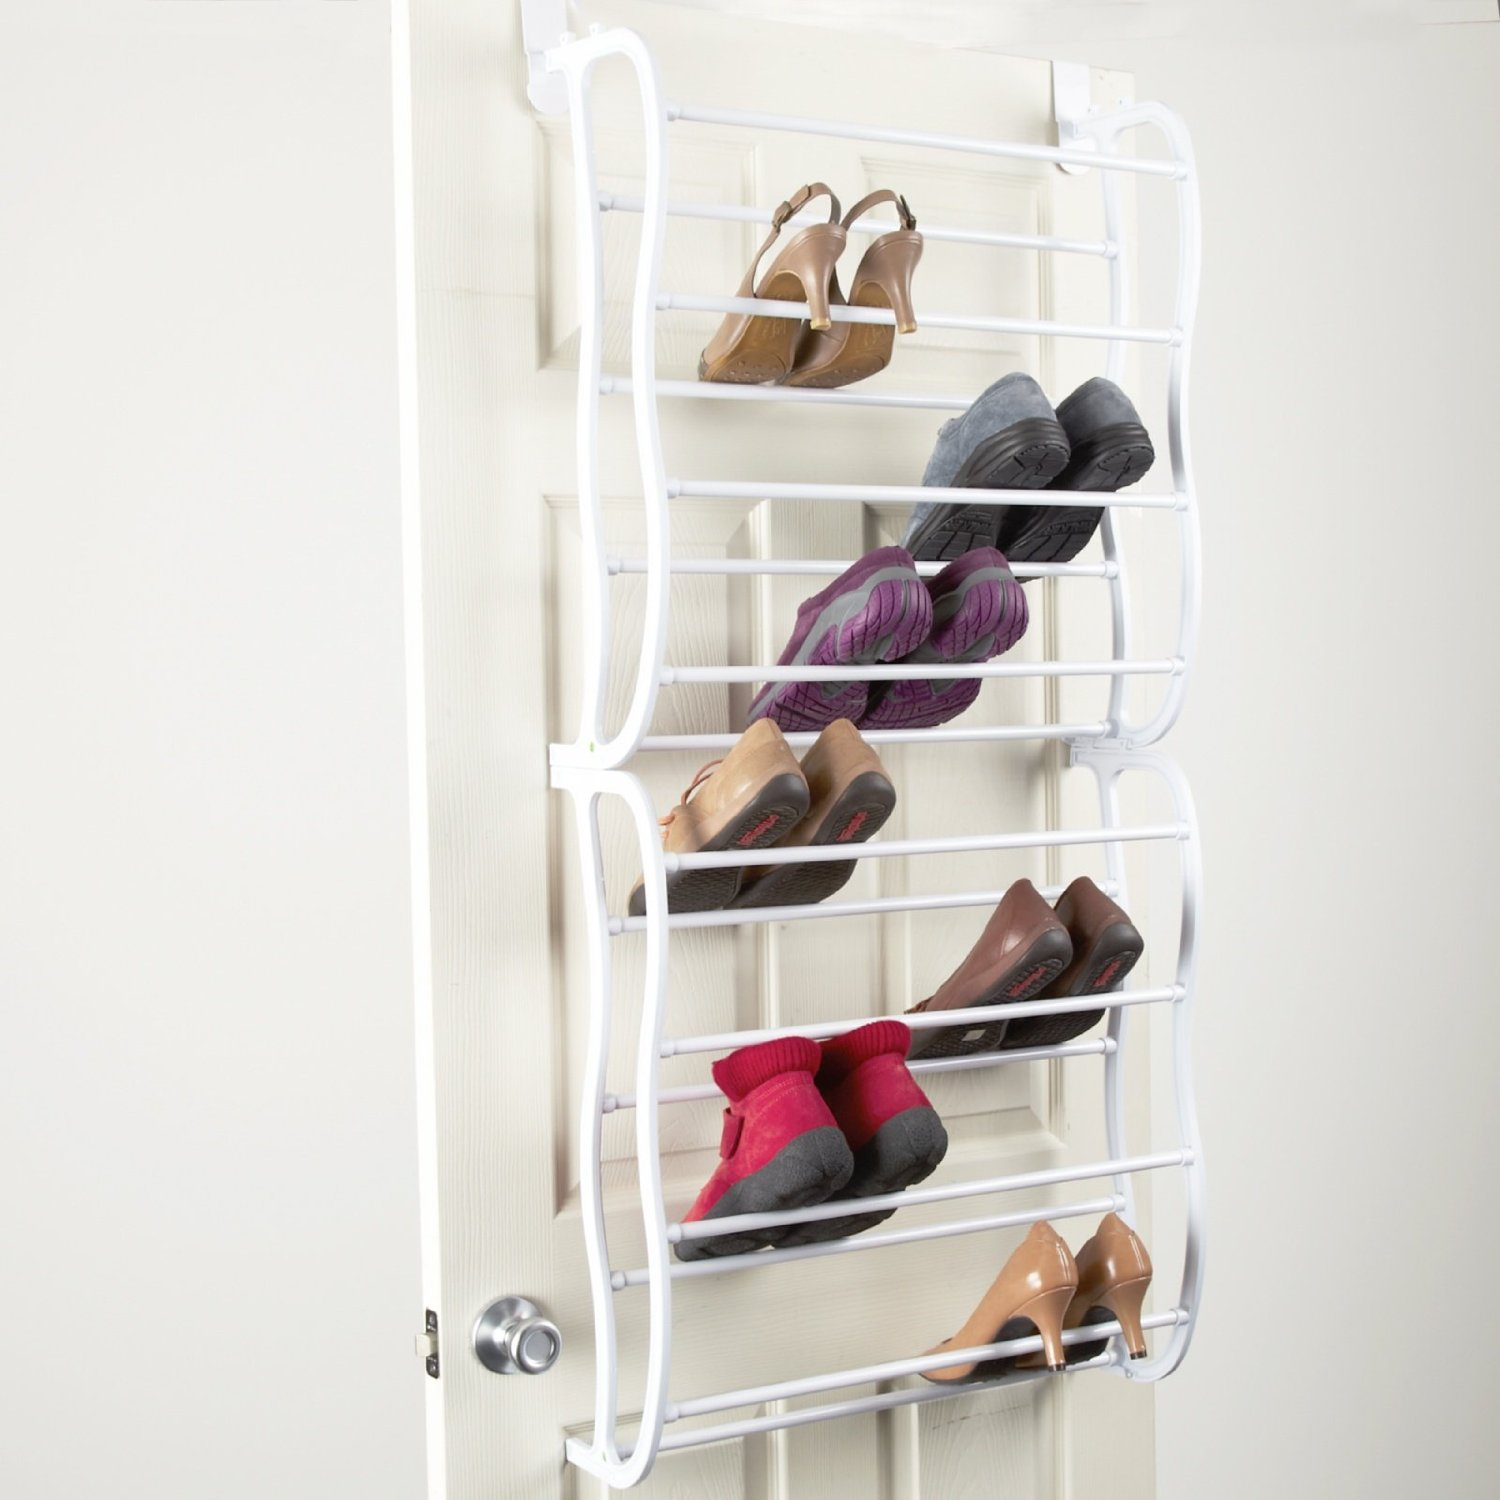 Elegant Innovative Shoe Racks For Closets Design And Ideas Image Of Door. toenail wall mounted shoe racks for closets